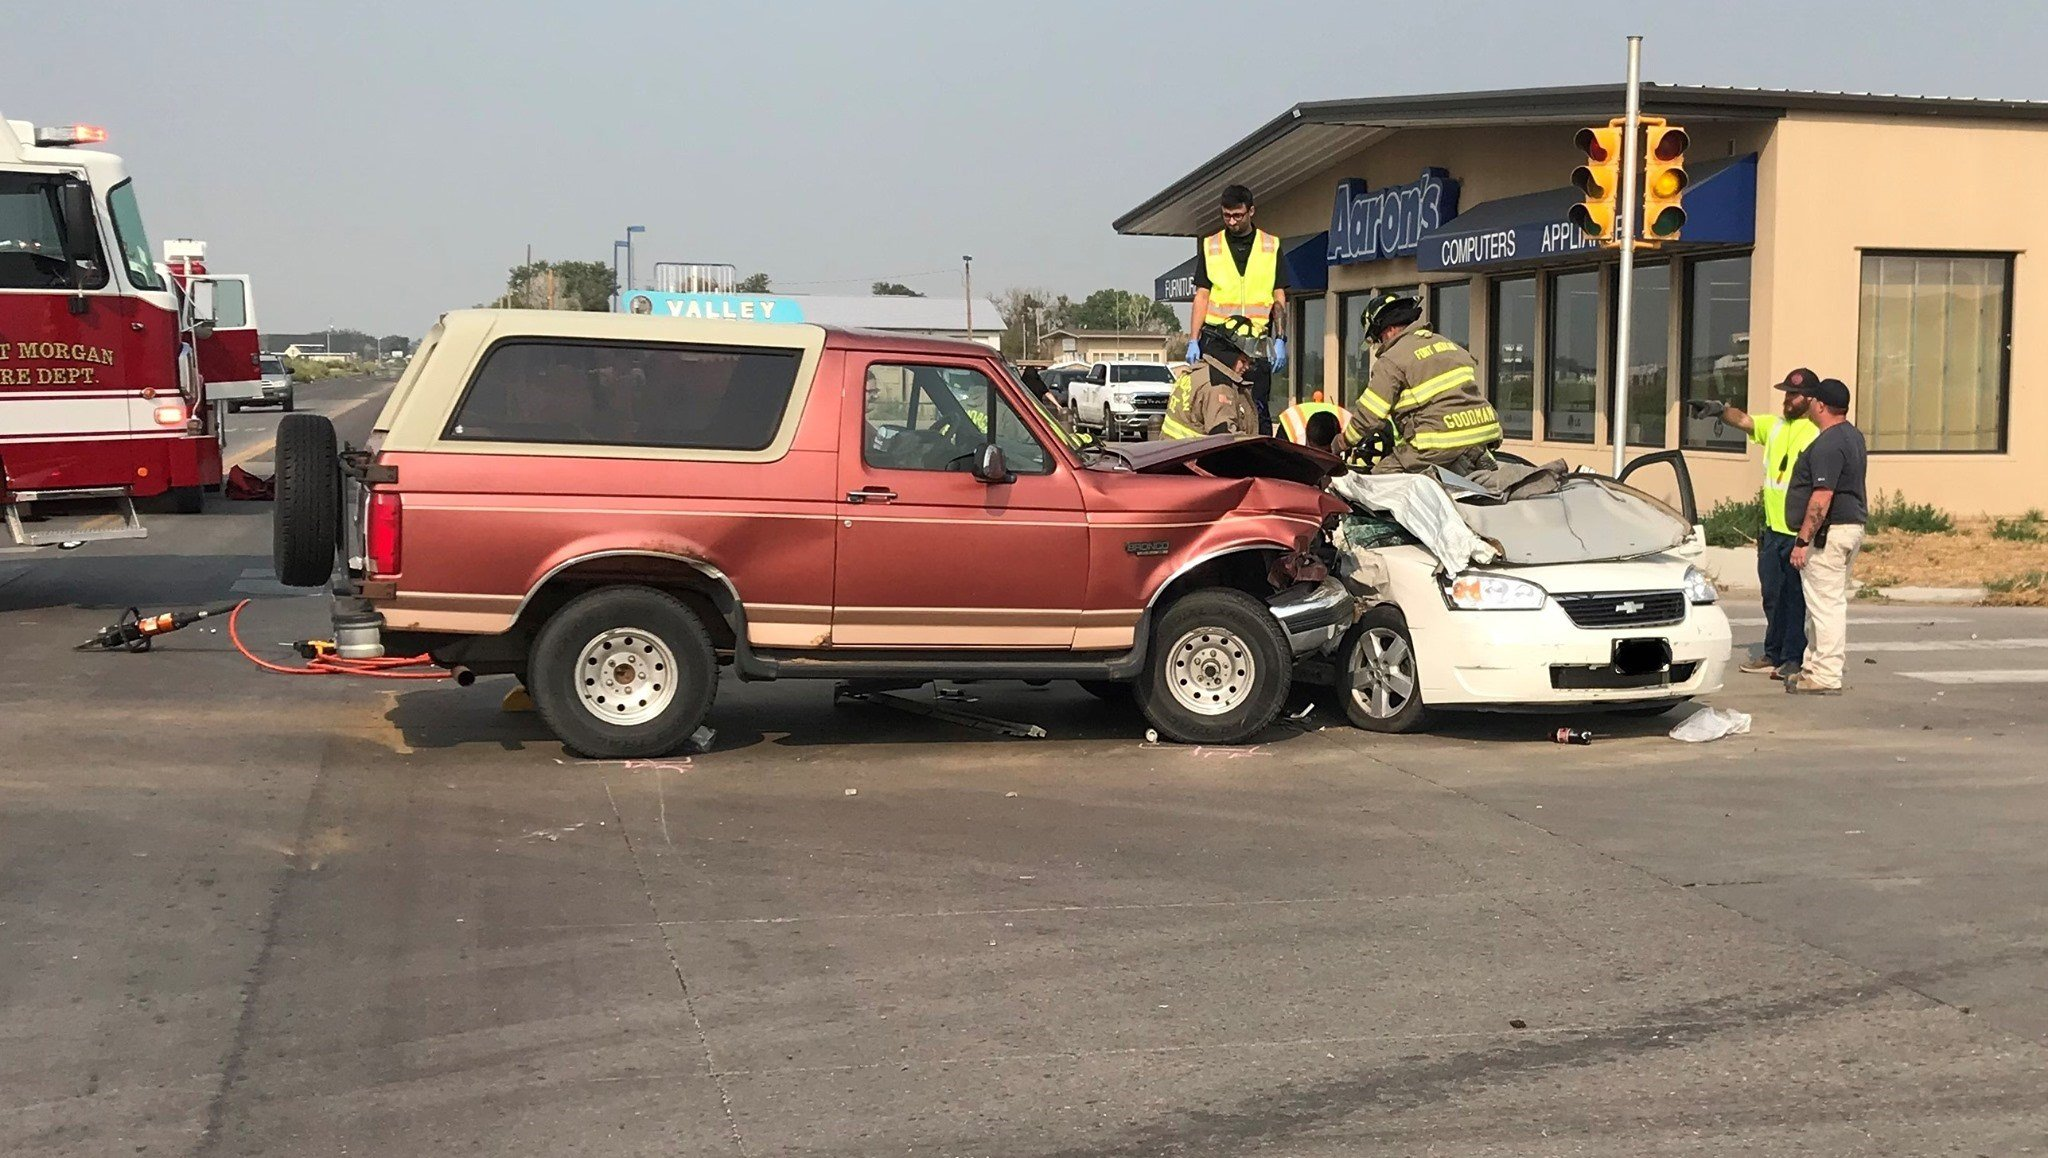 Police investigate two-vehicle accident in Fort Morgan